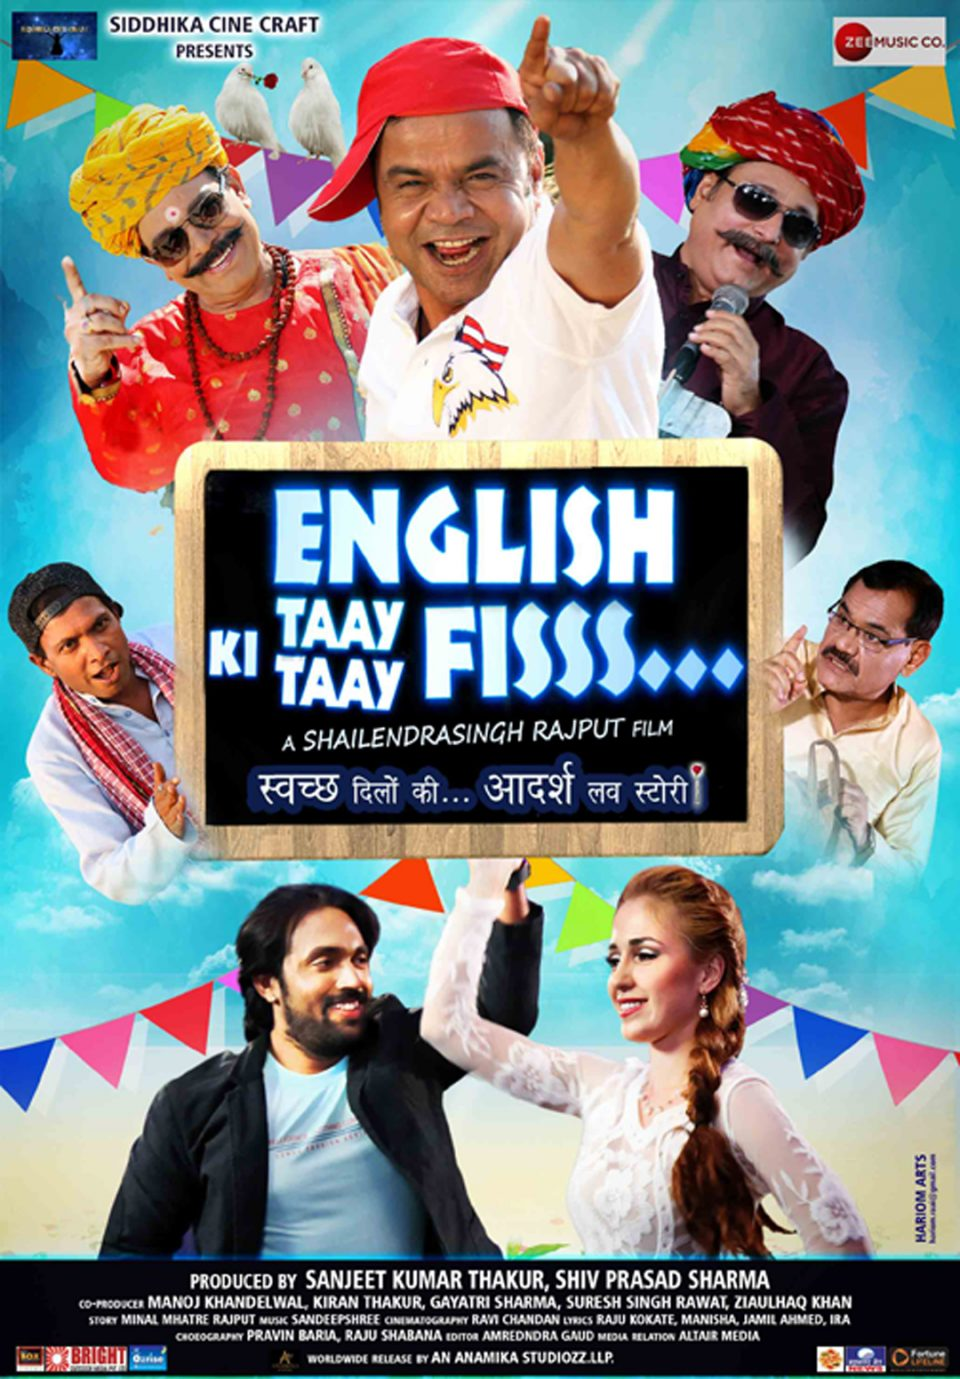 English ki Taay taay fisss all set to hit cinema on 3rd Jan 2020